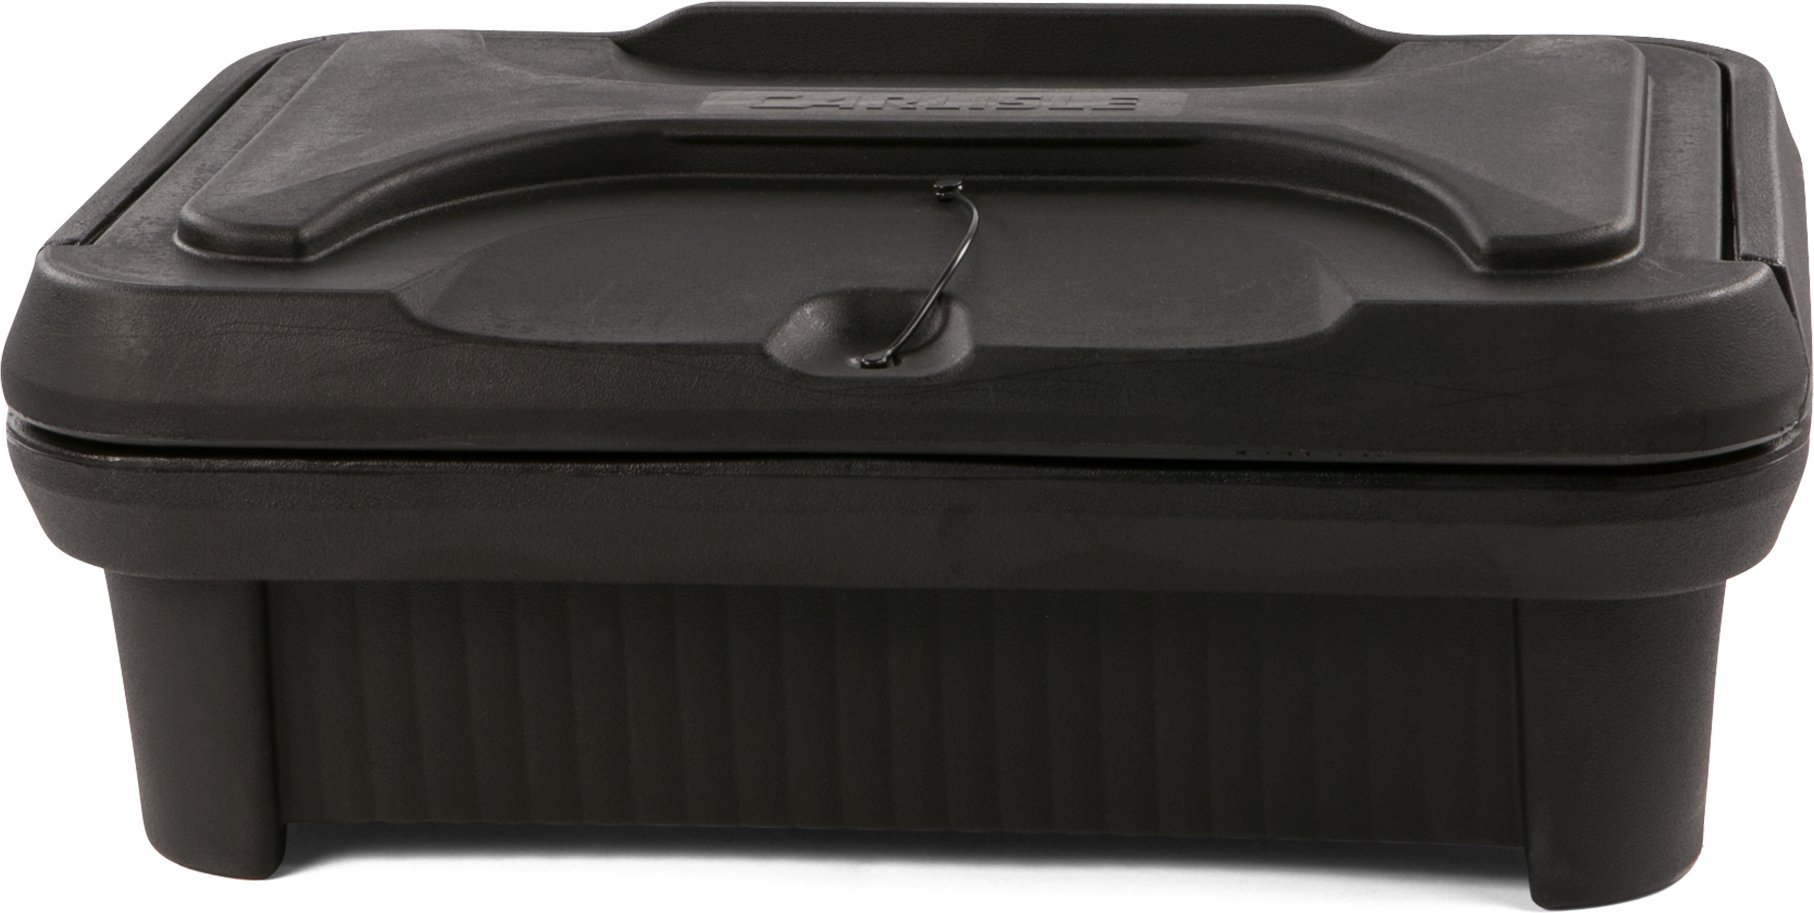 Carlisle XT140003 Cateraide Insulated Food Pan Carrier, Top Loading, 4'', Black